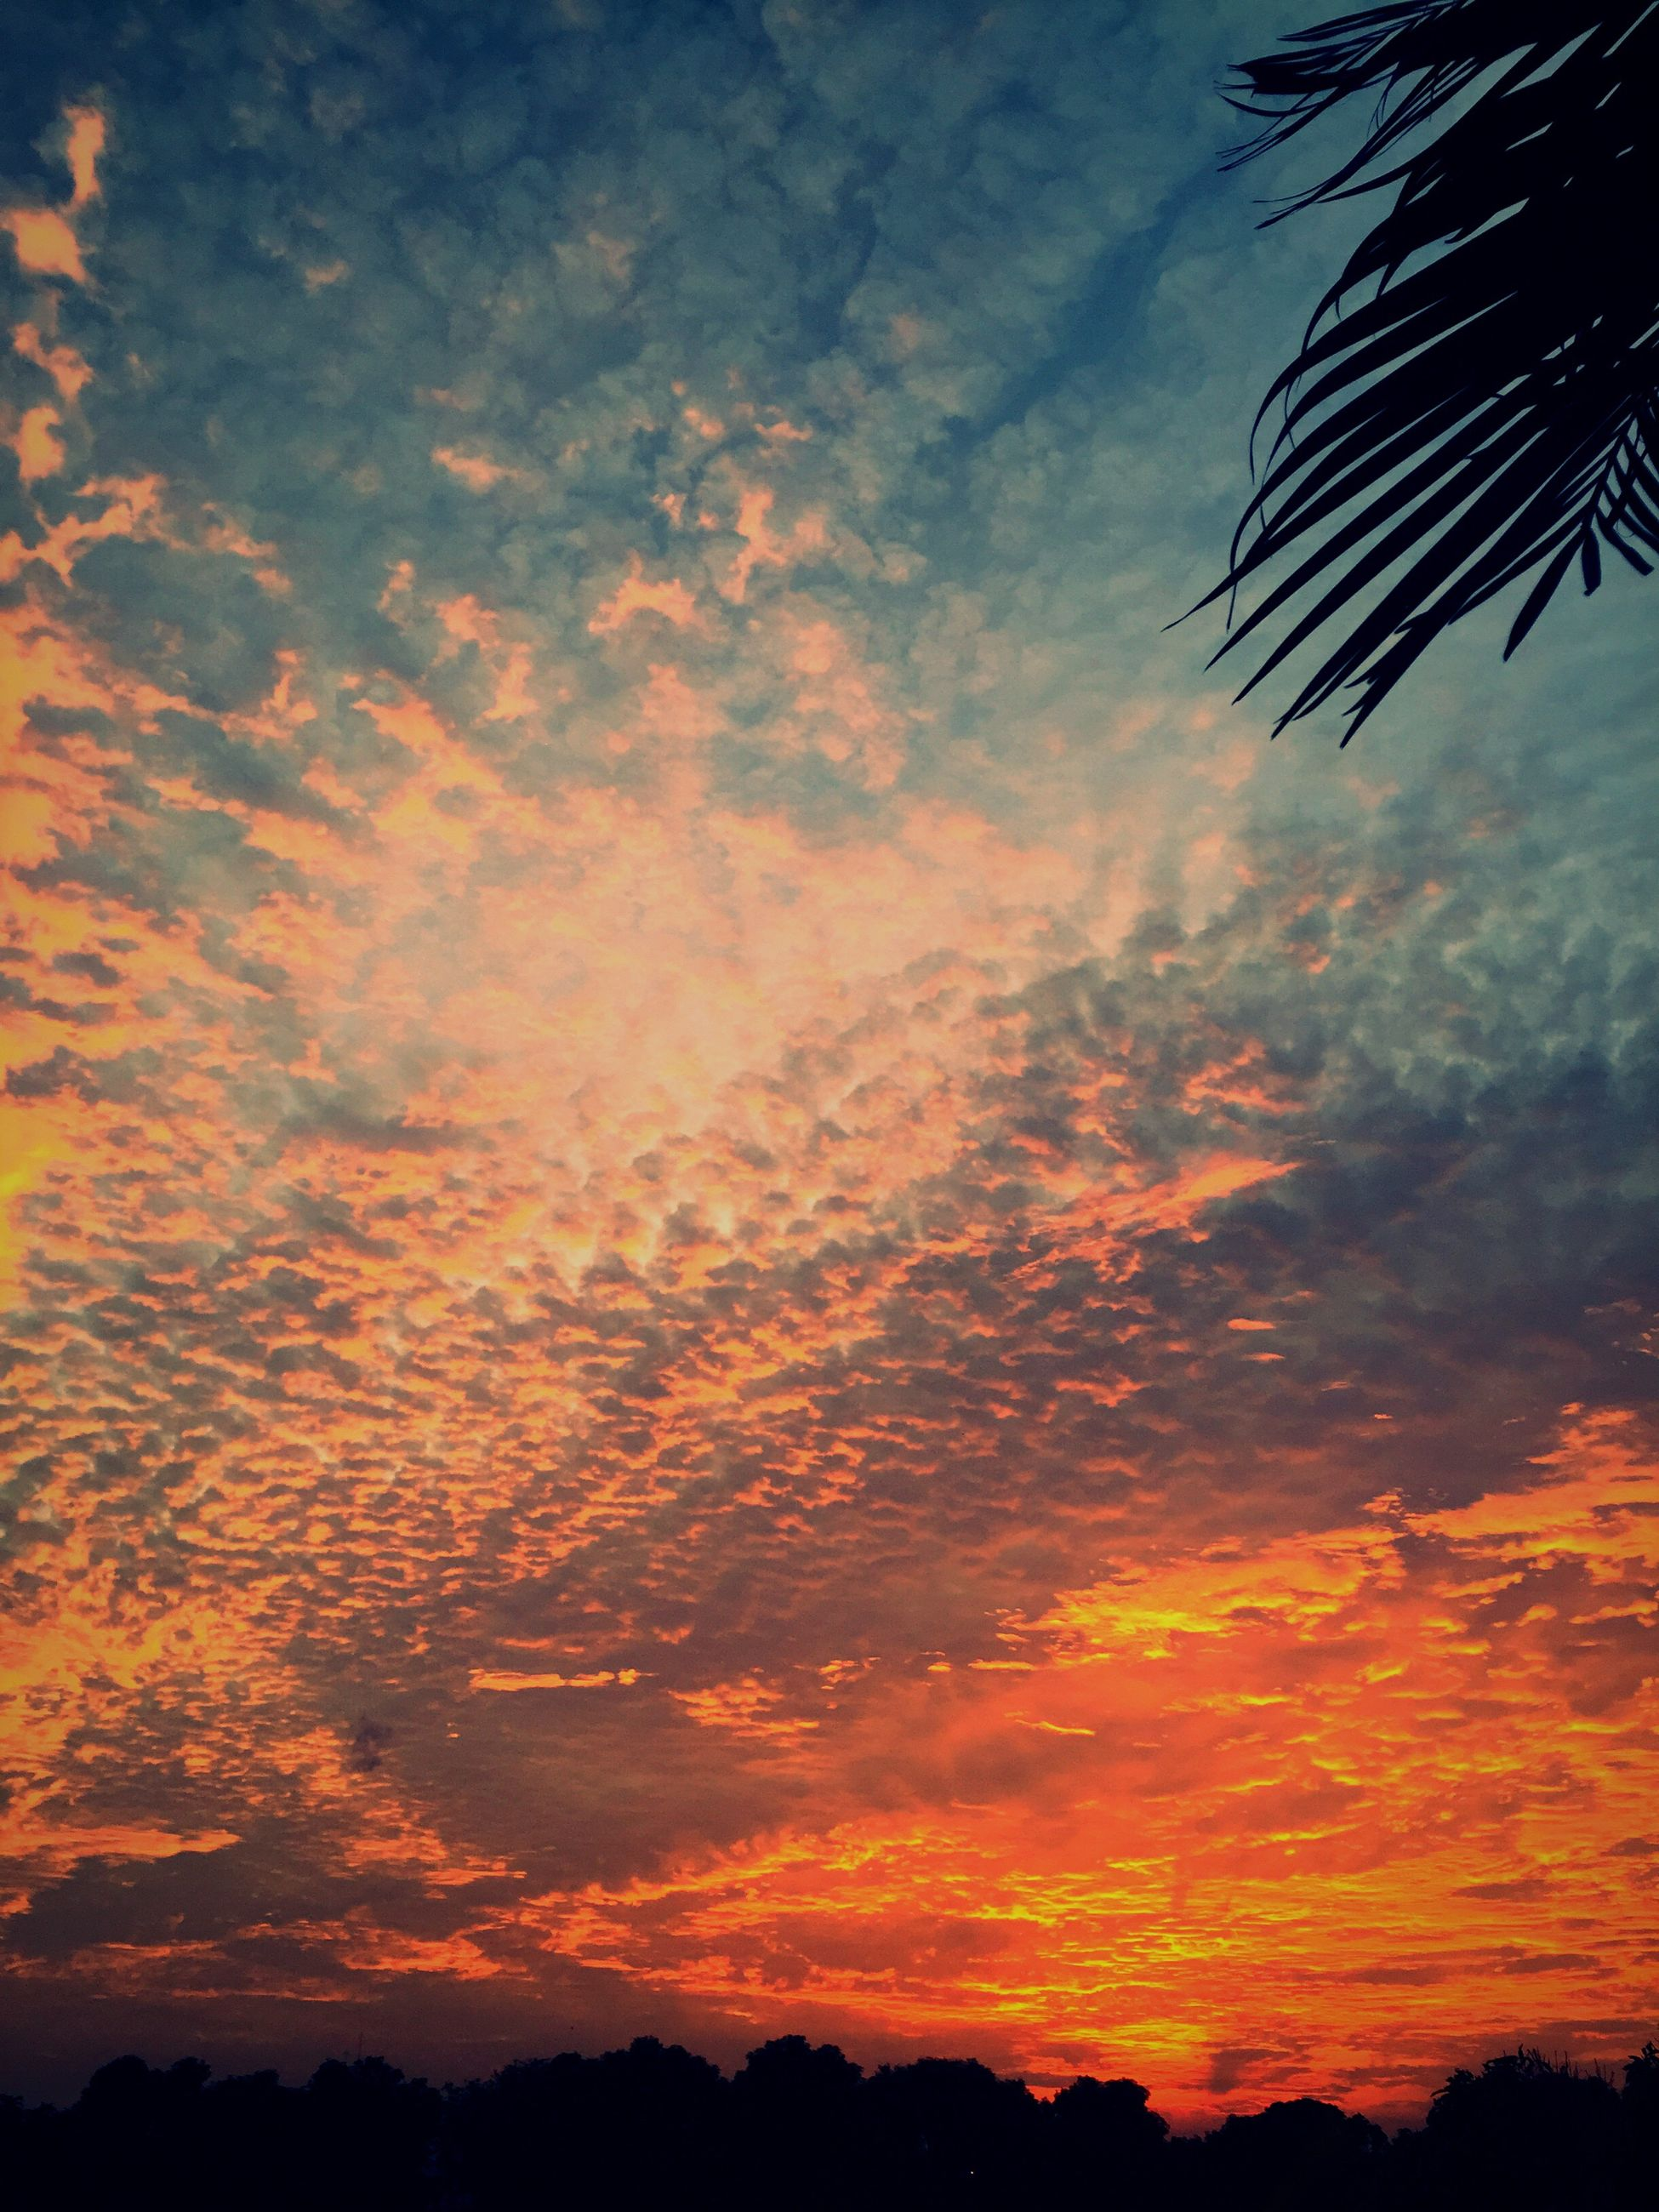 sunset, silhouette, sky, beauty in nature, scenics, tranquility, tranquil scene, cloud - sky, orange color, low angle view, nature, tree, dramatic sky, idyllic, cloud, majestic, cloudy, outdoors, no people, moody sky